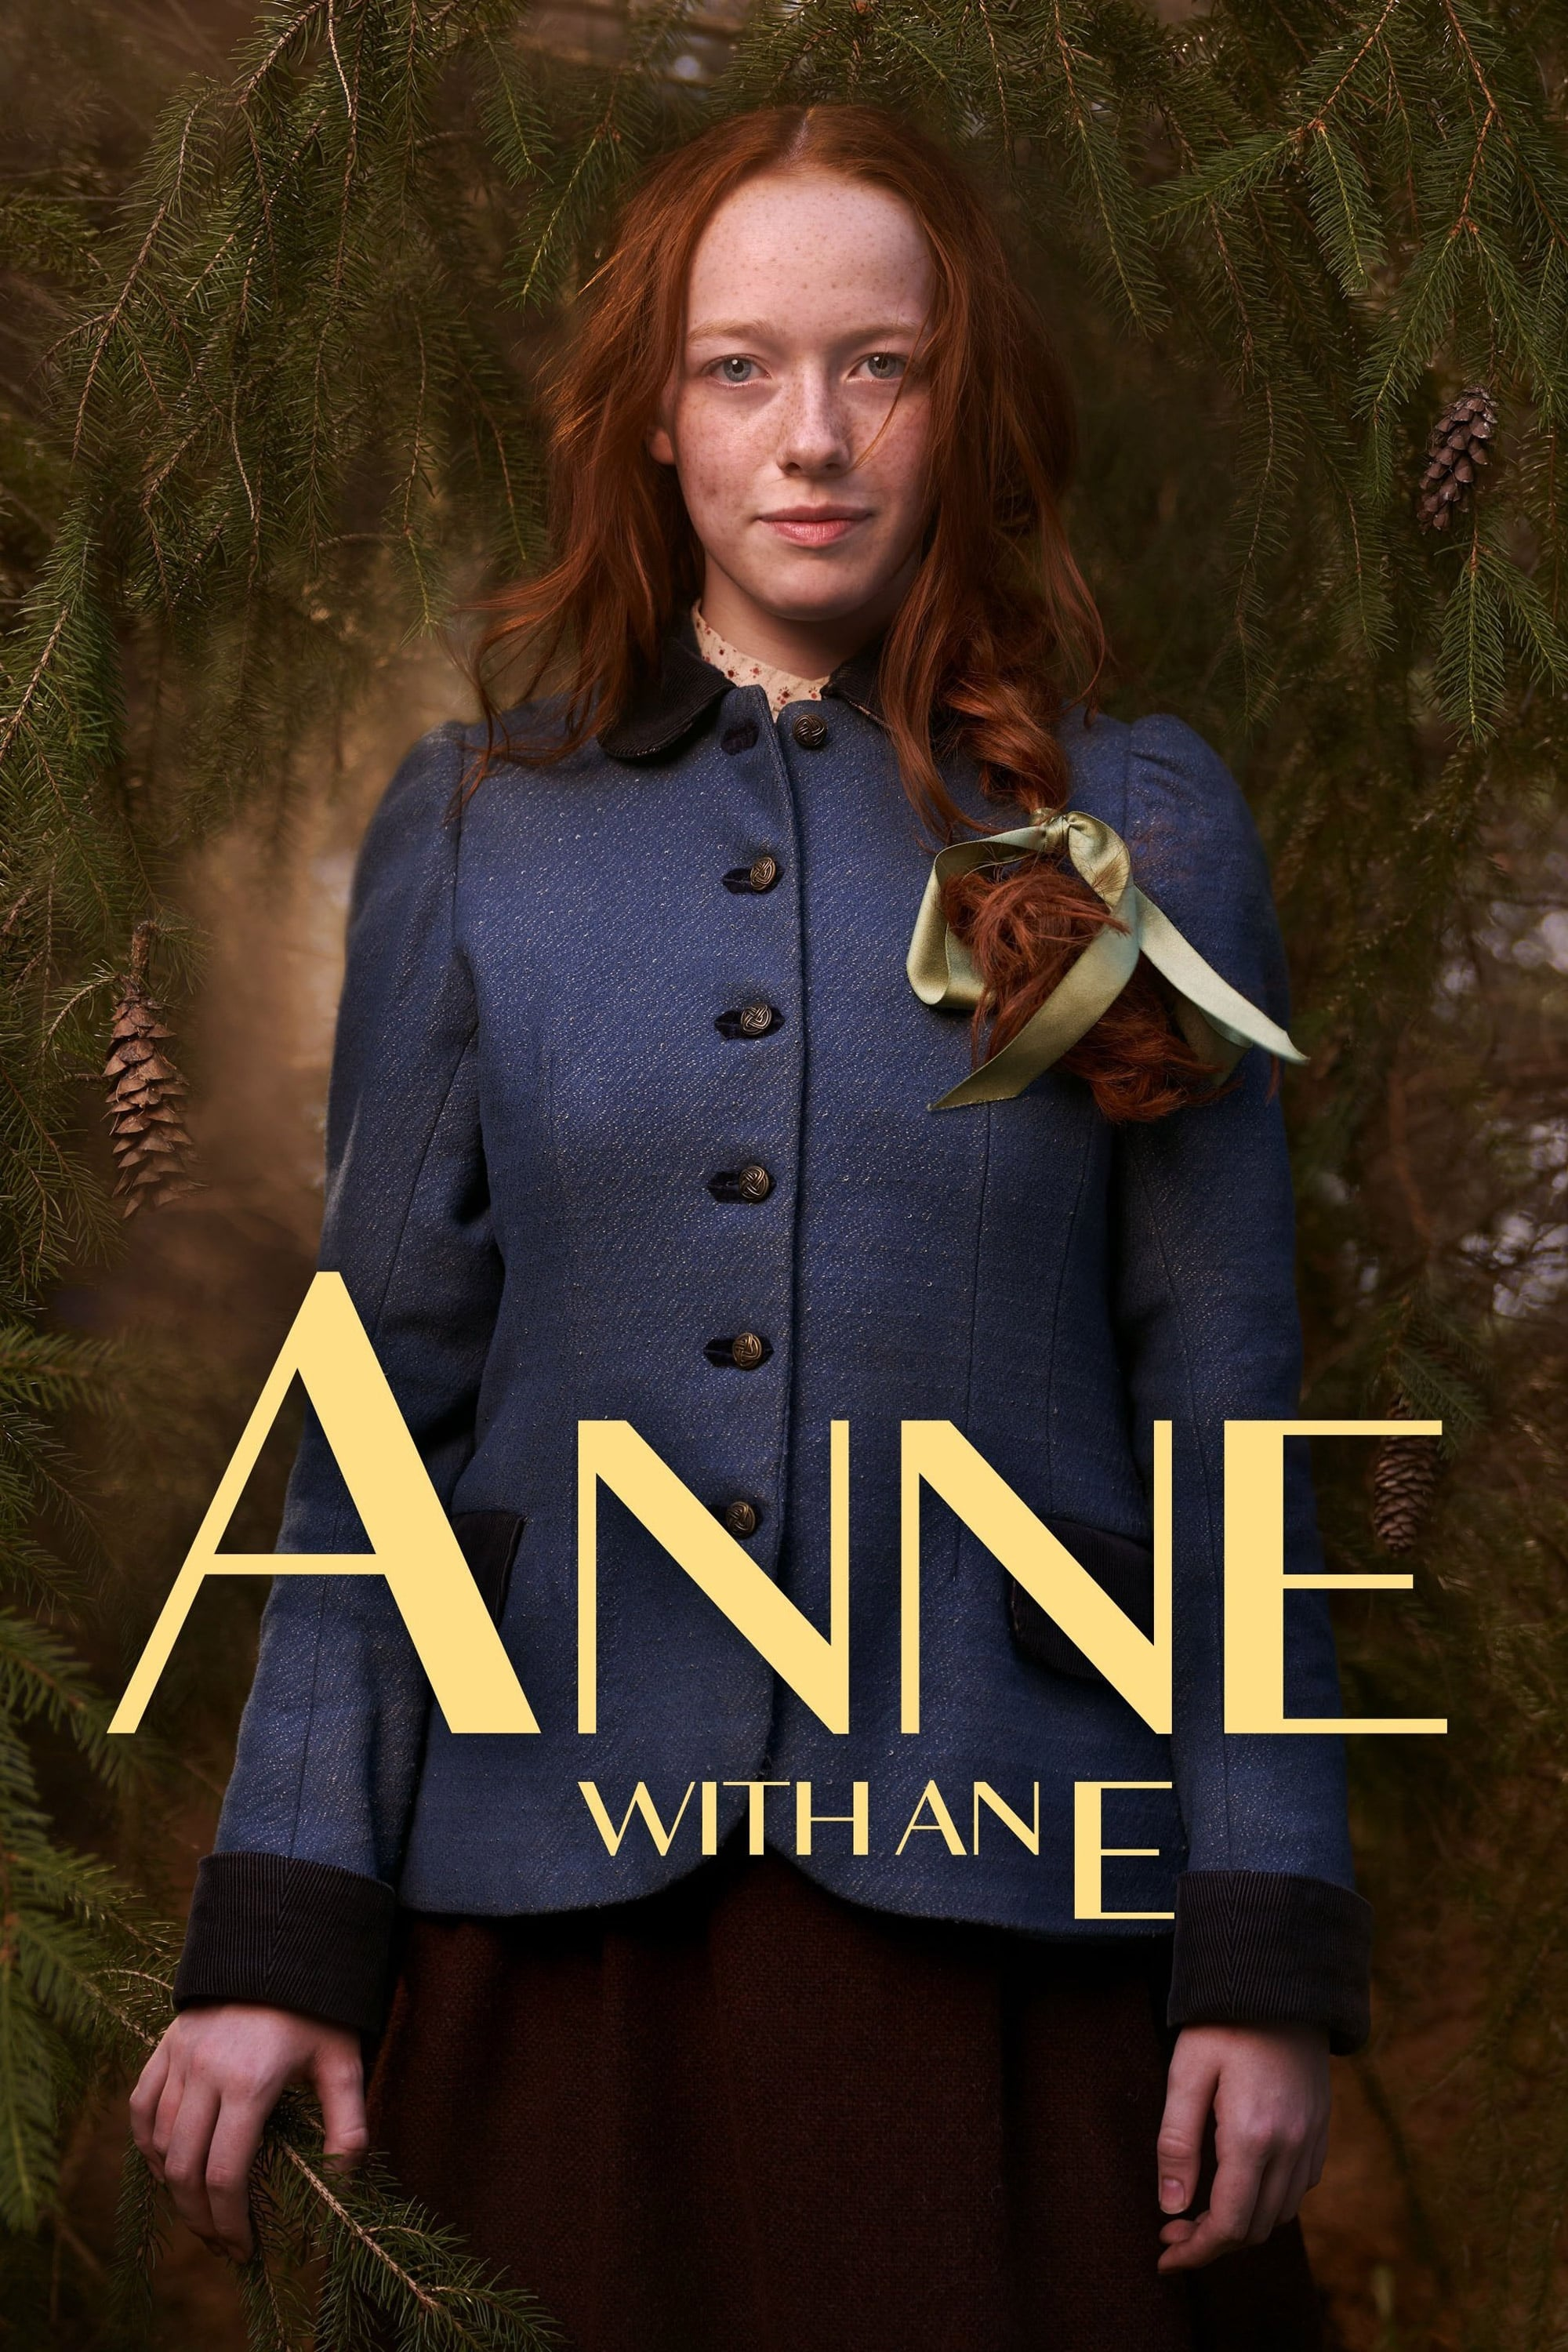 Anne with an E